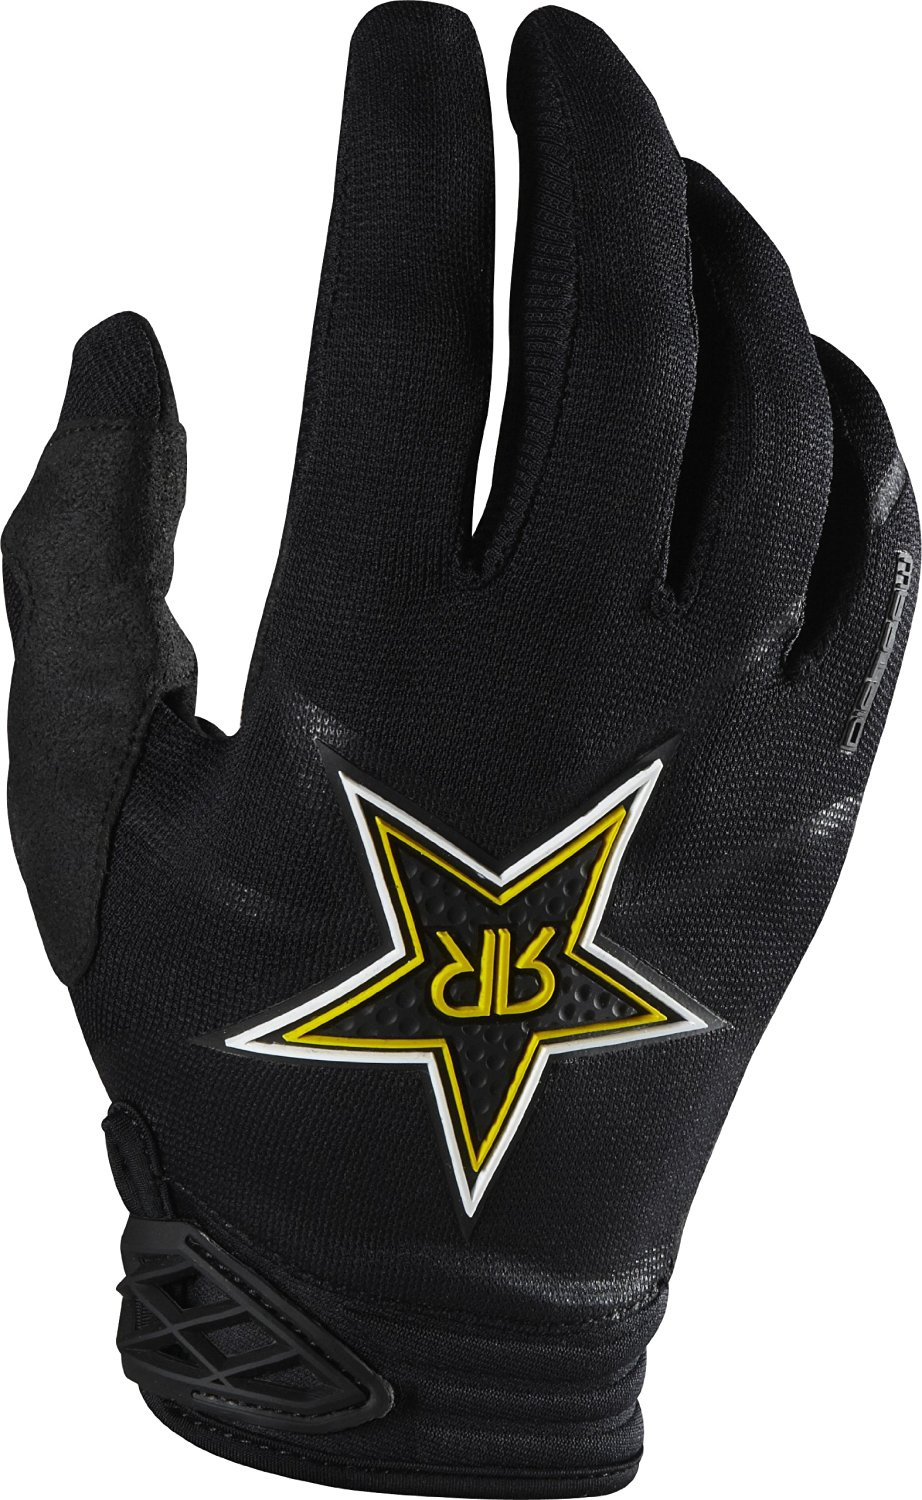 Fox Racing Dirtpaw Rockstar Men's Dirt Bike Motorcycle Gloves - Black / 2X-Large